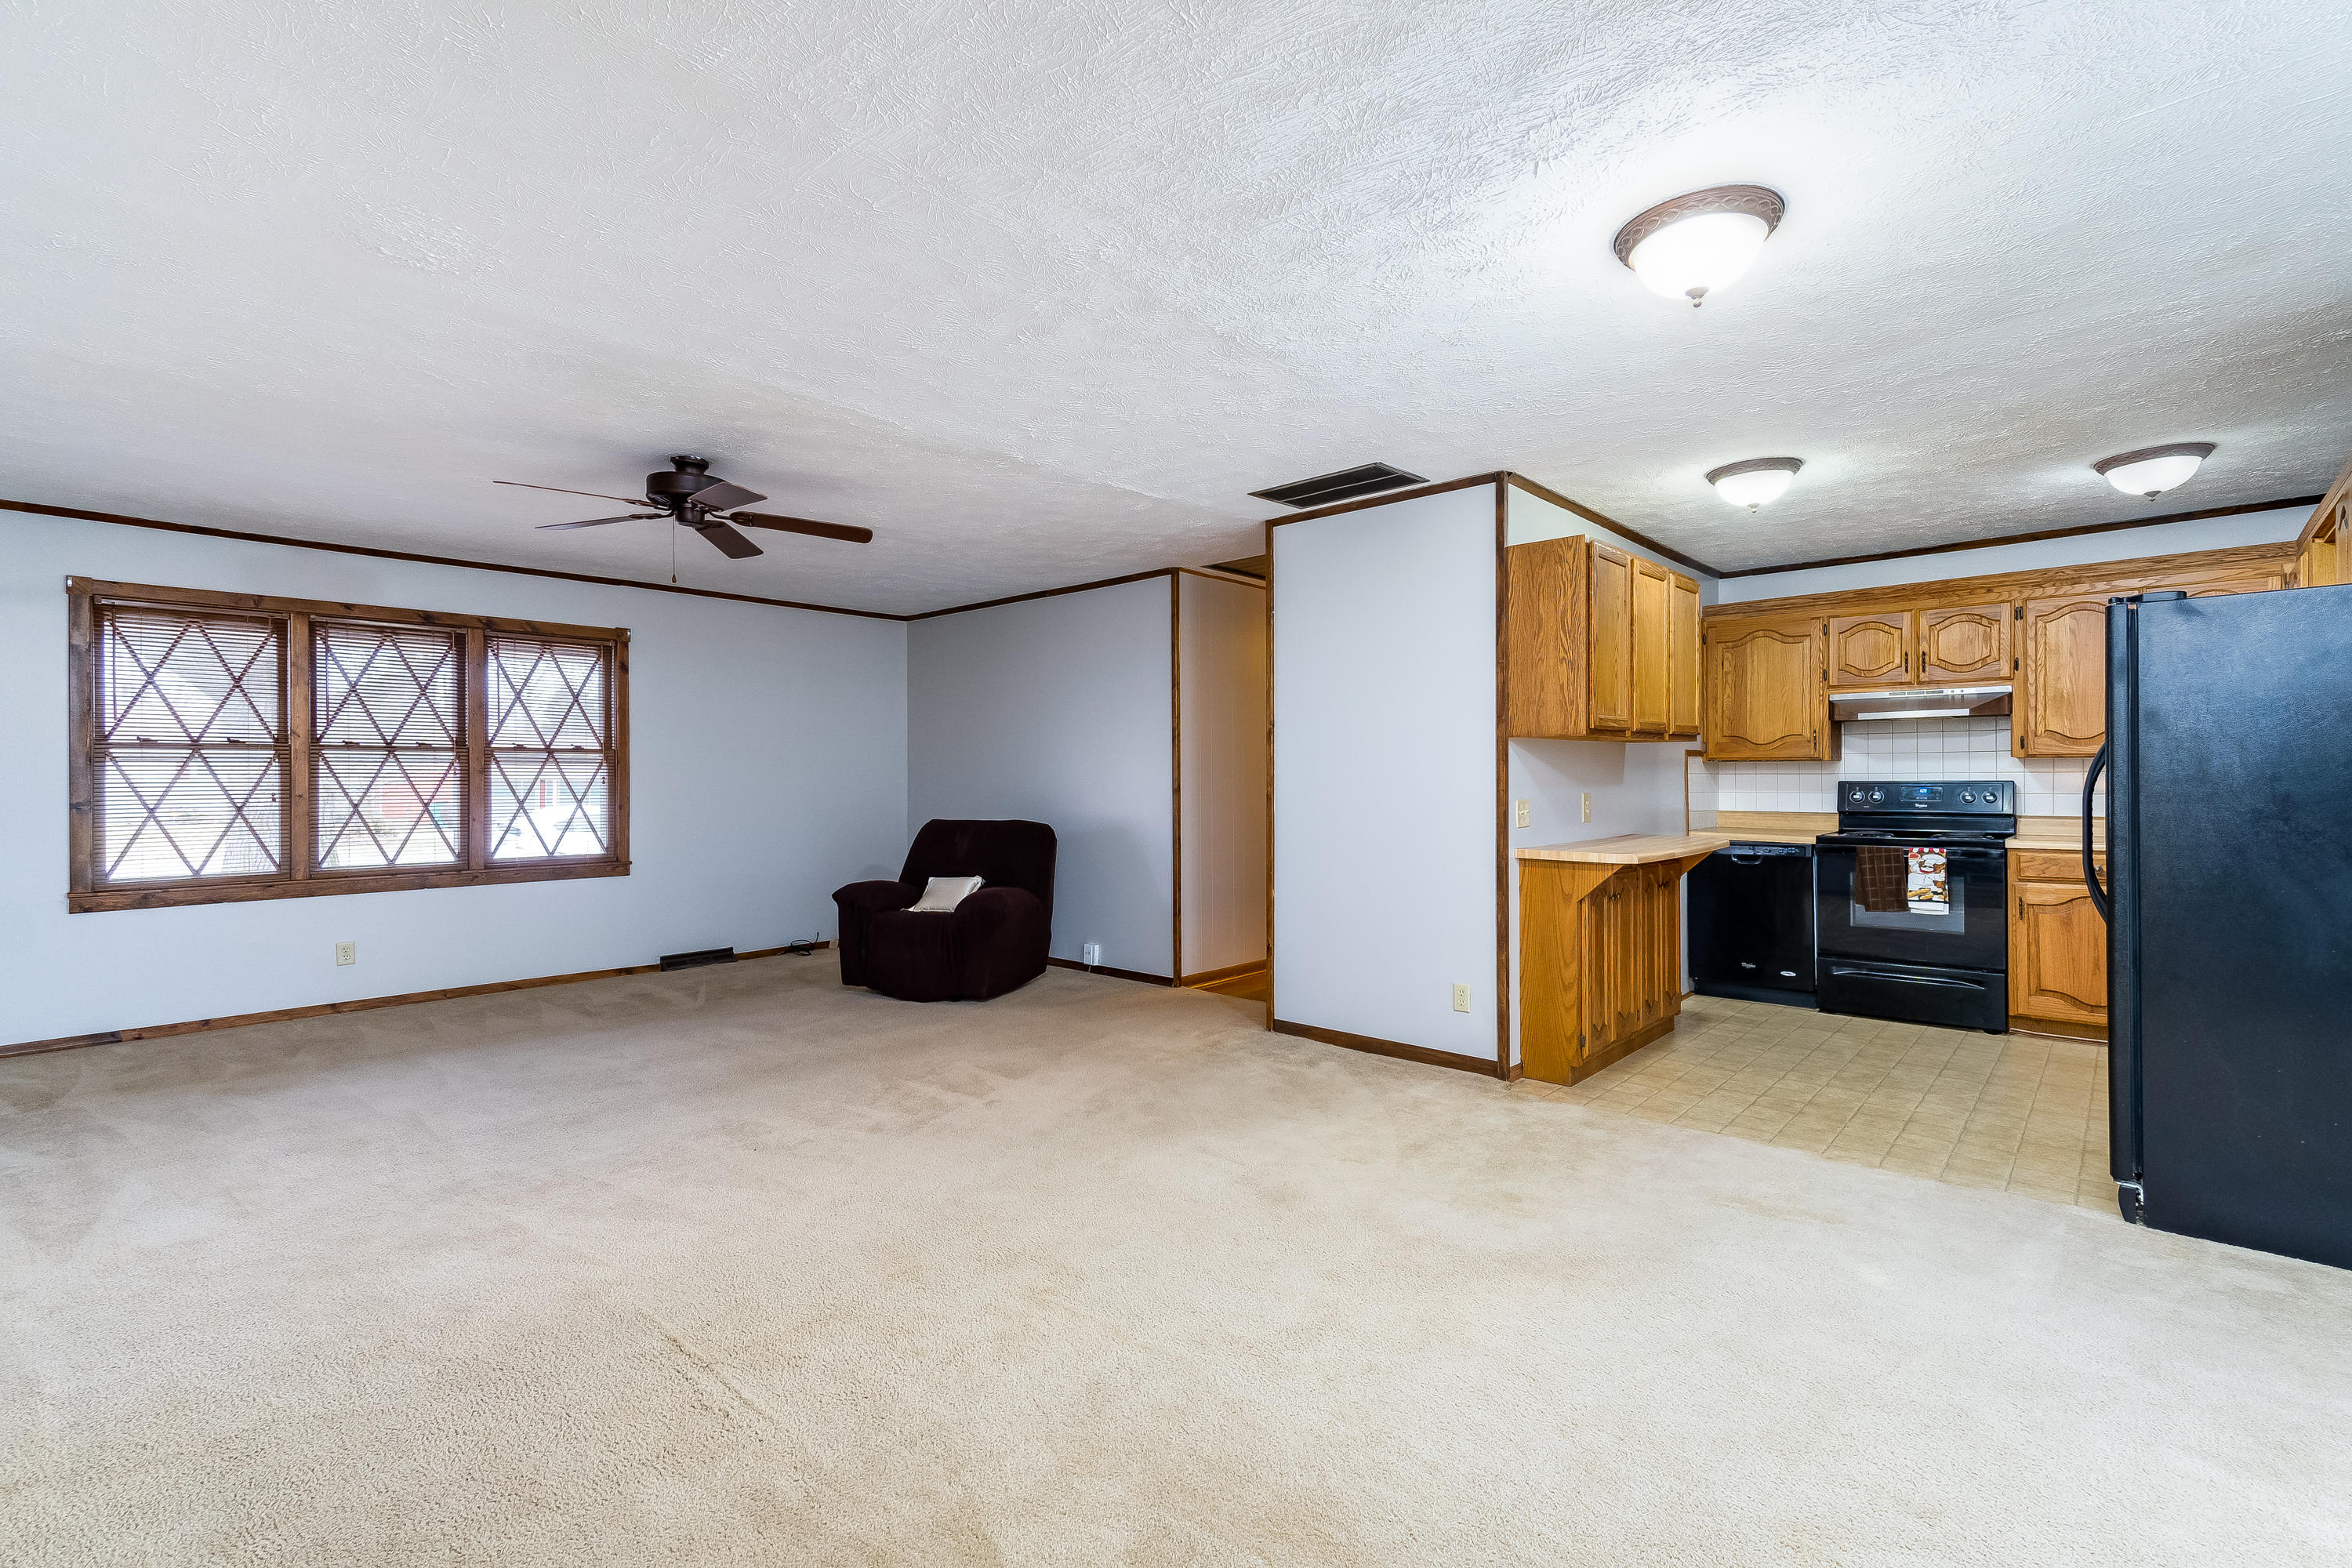 502 North Burton Avenue Springfield, MO 65802